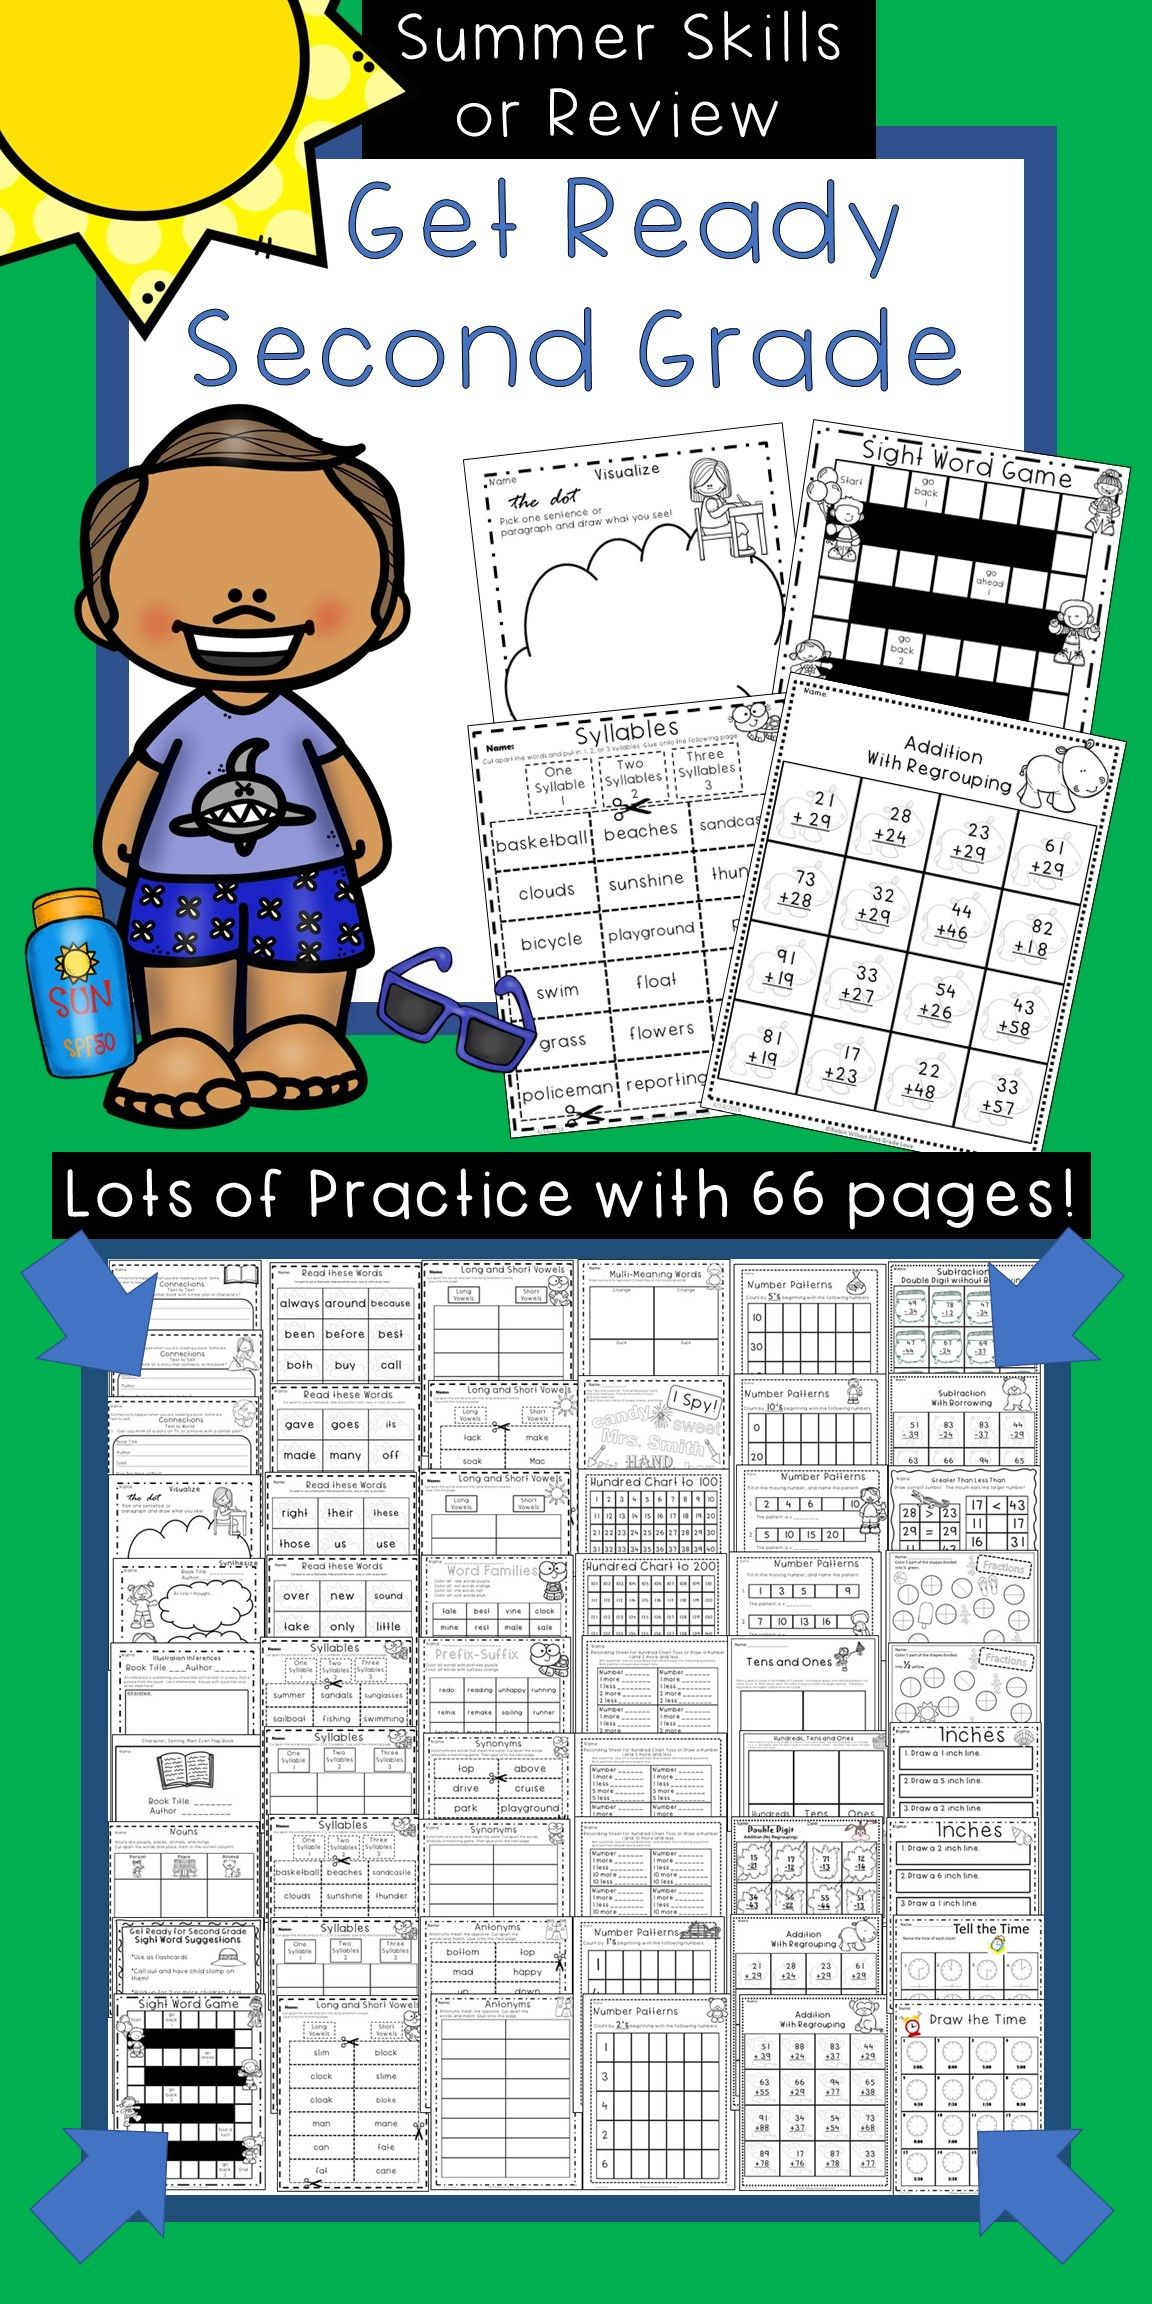 Get Ready For Second Grade Summer Skills Or Review